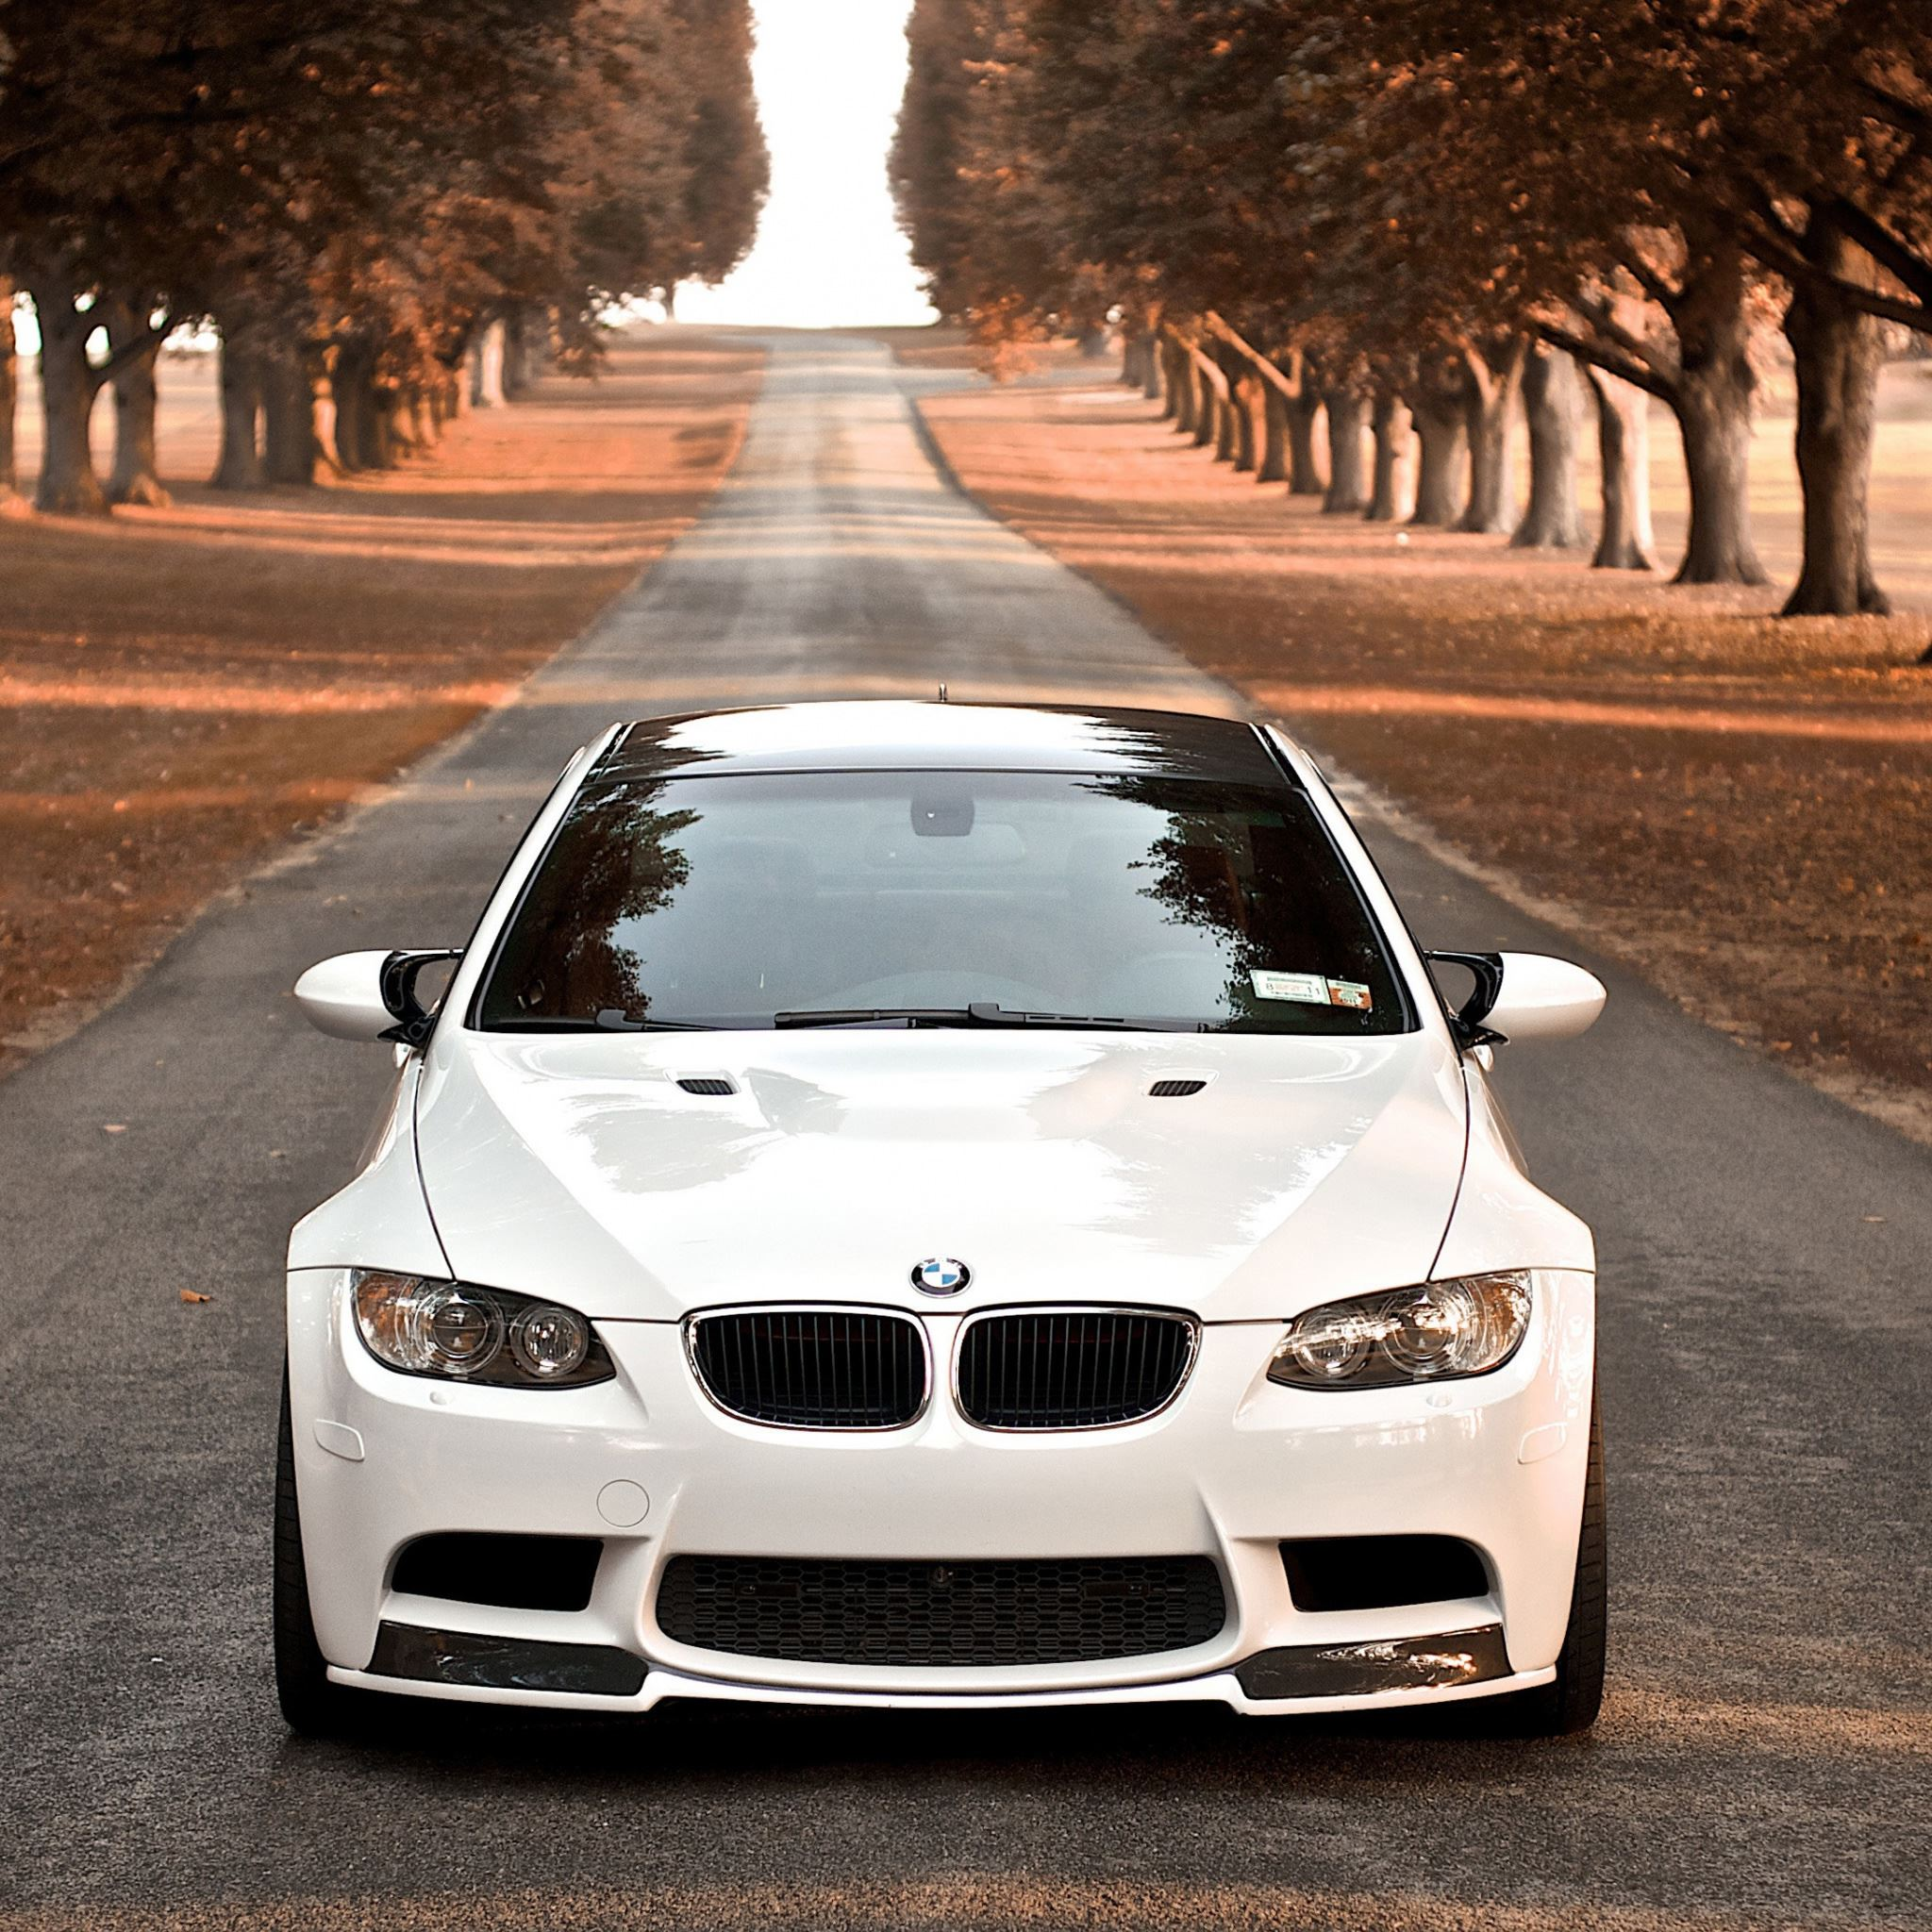 Bmw Wallpapers And Backgrounds: Bmw M3 Fall IPad Air Wallpaper Download